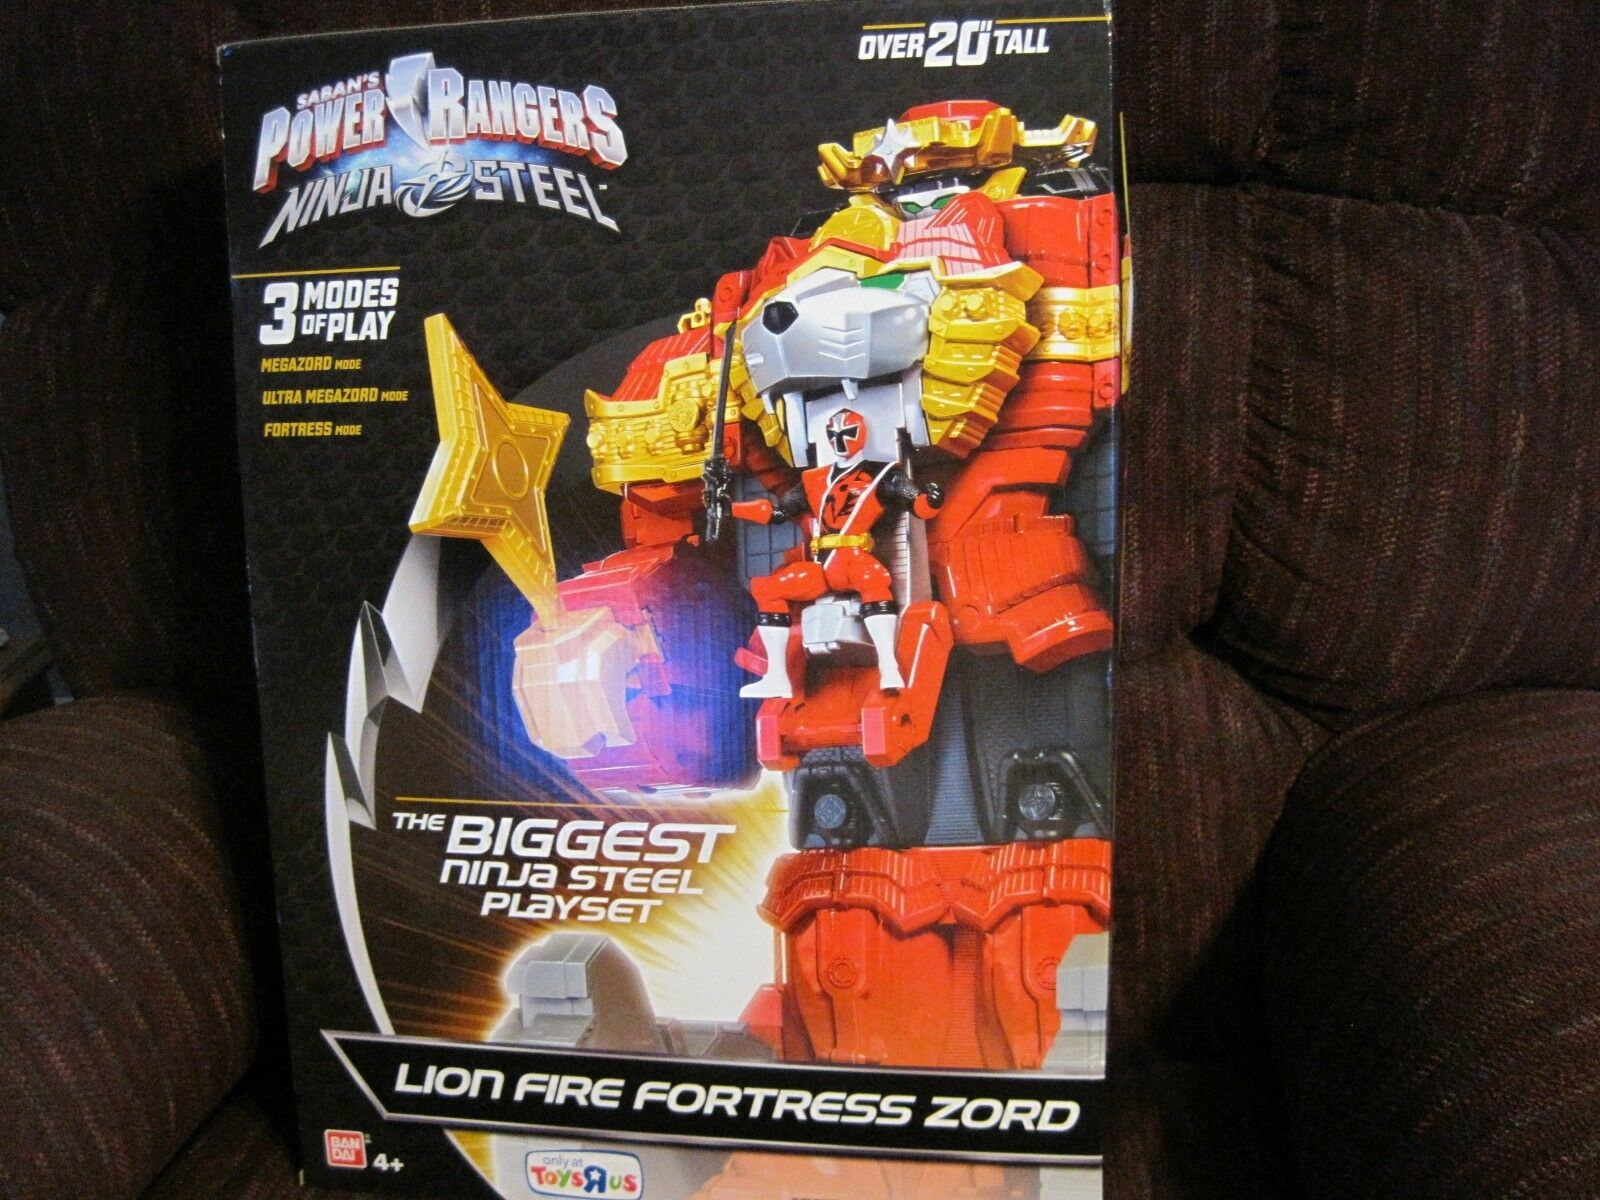 SABAN'S POWER RANGERS NINJA STEEL LION FIRE FORTRESS ZORD OVER 20